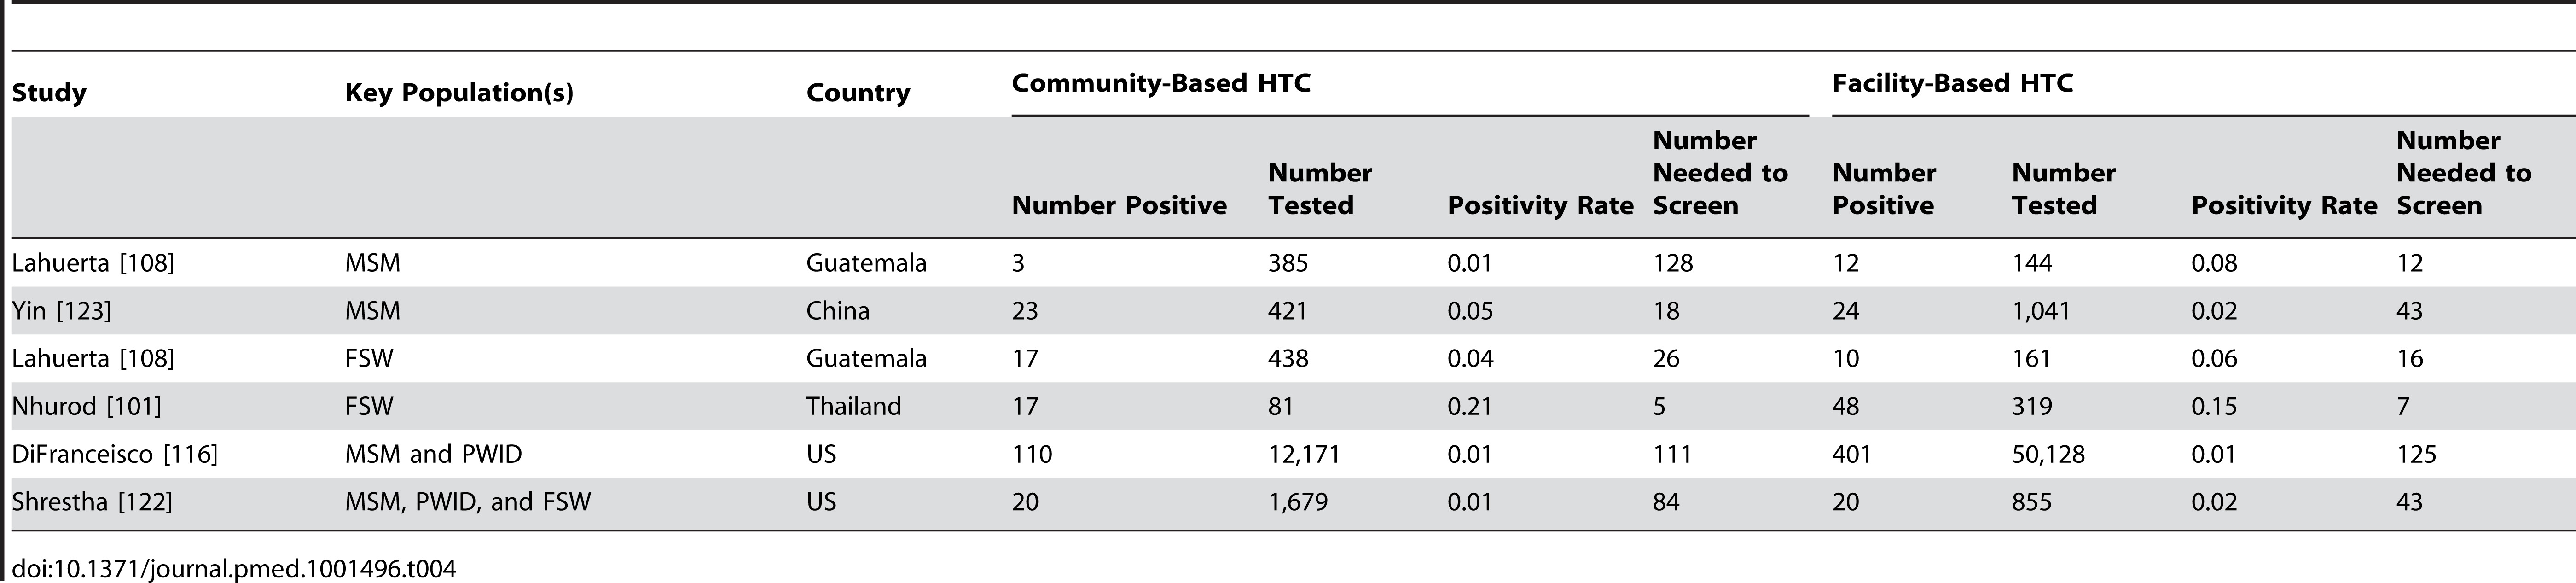 Number needed to screen to identify a person with HIV in studies offering community- and facility-based HTC to key populations.